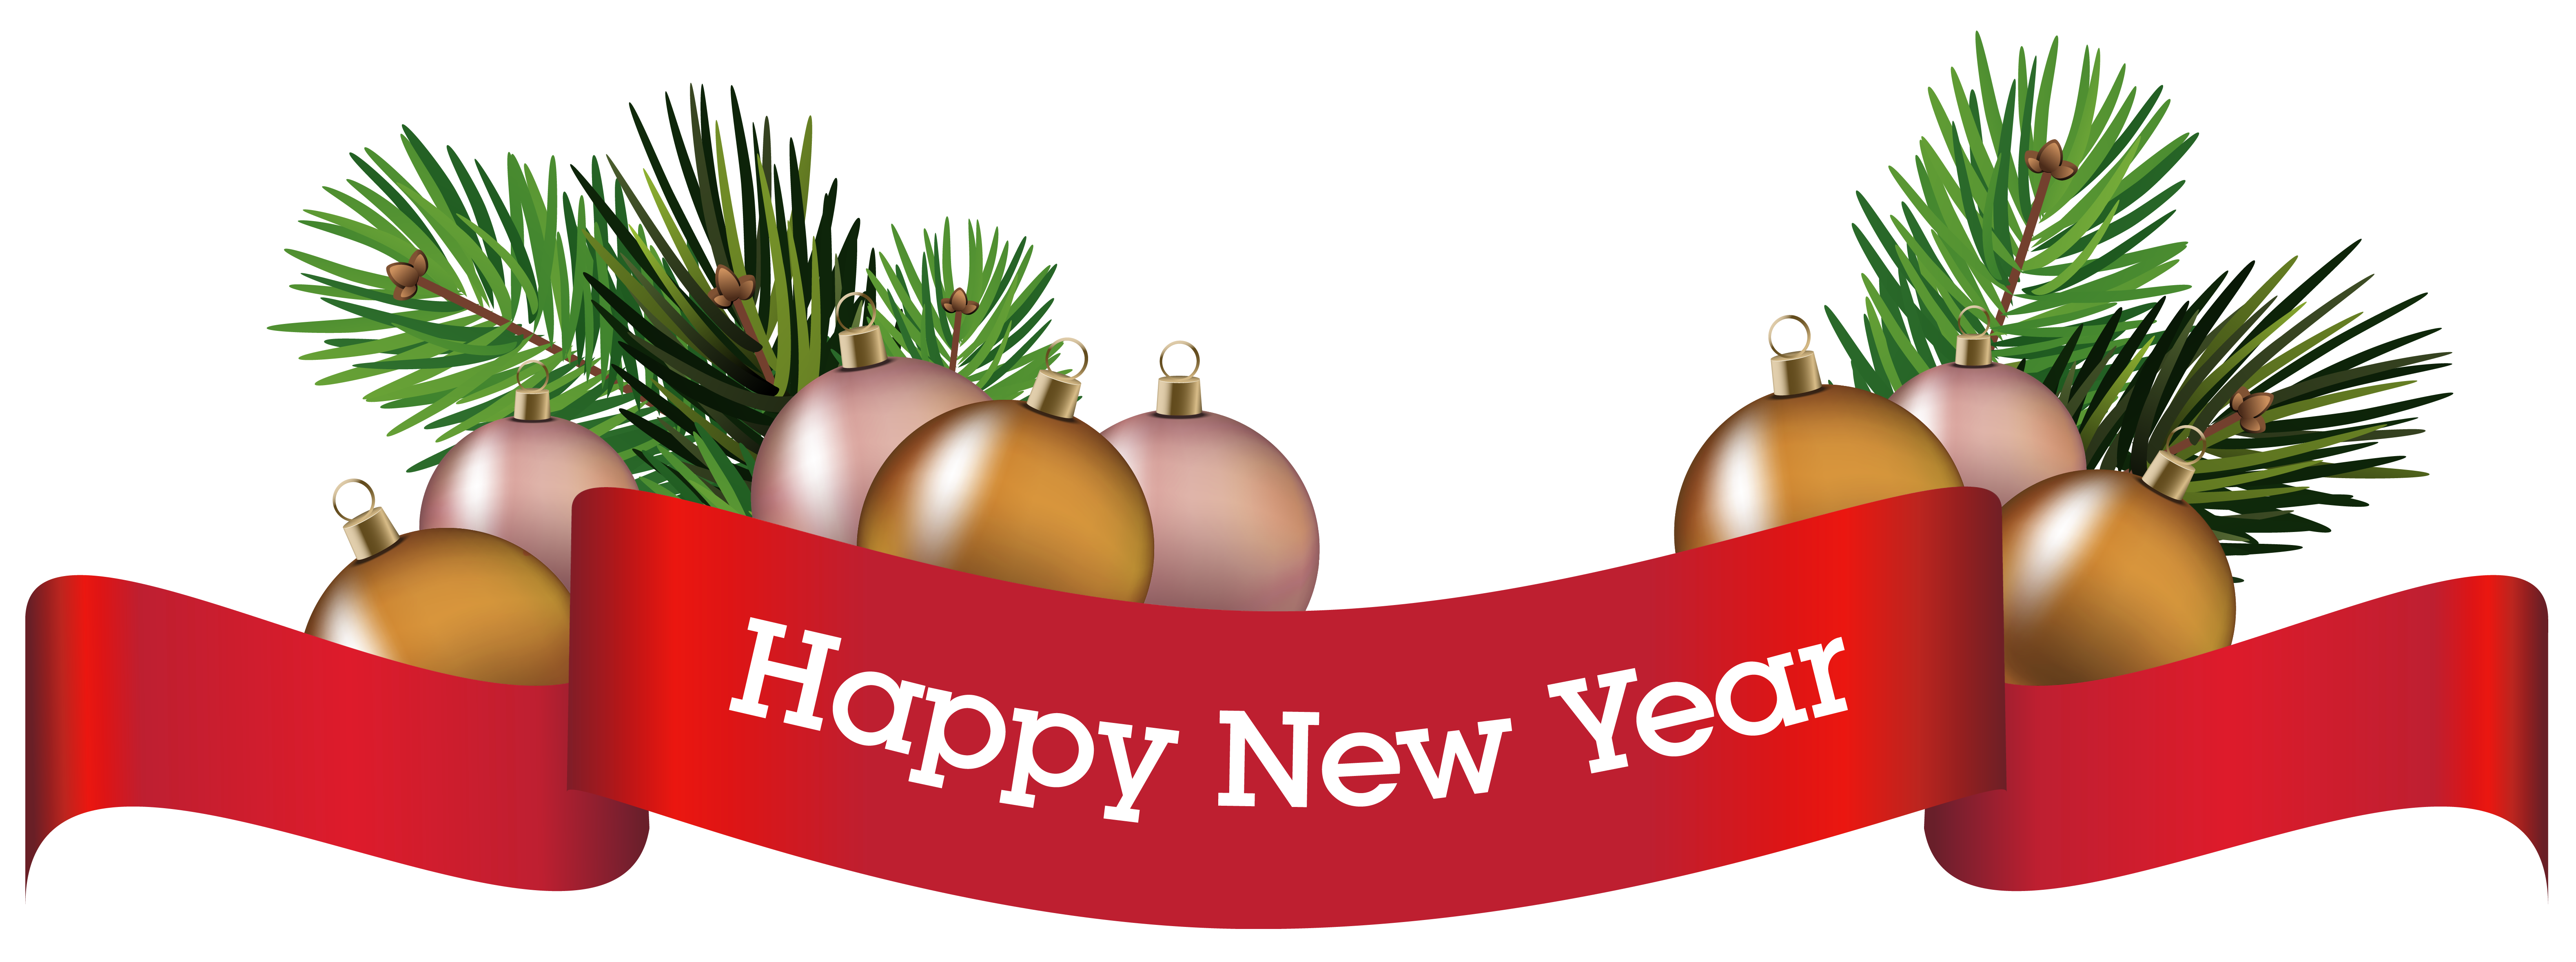 New year ornaments png. Merry christmas decorative ornament